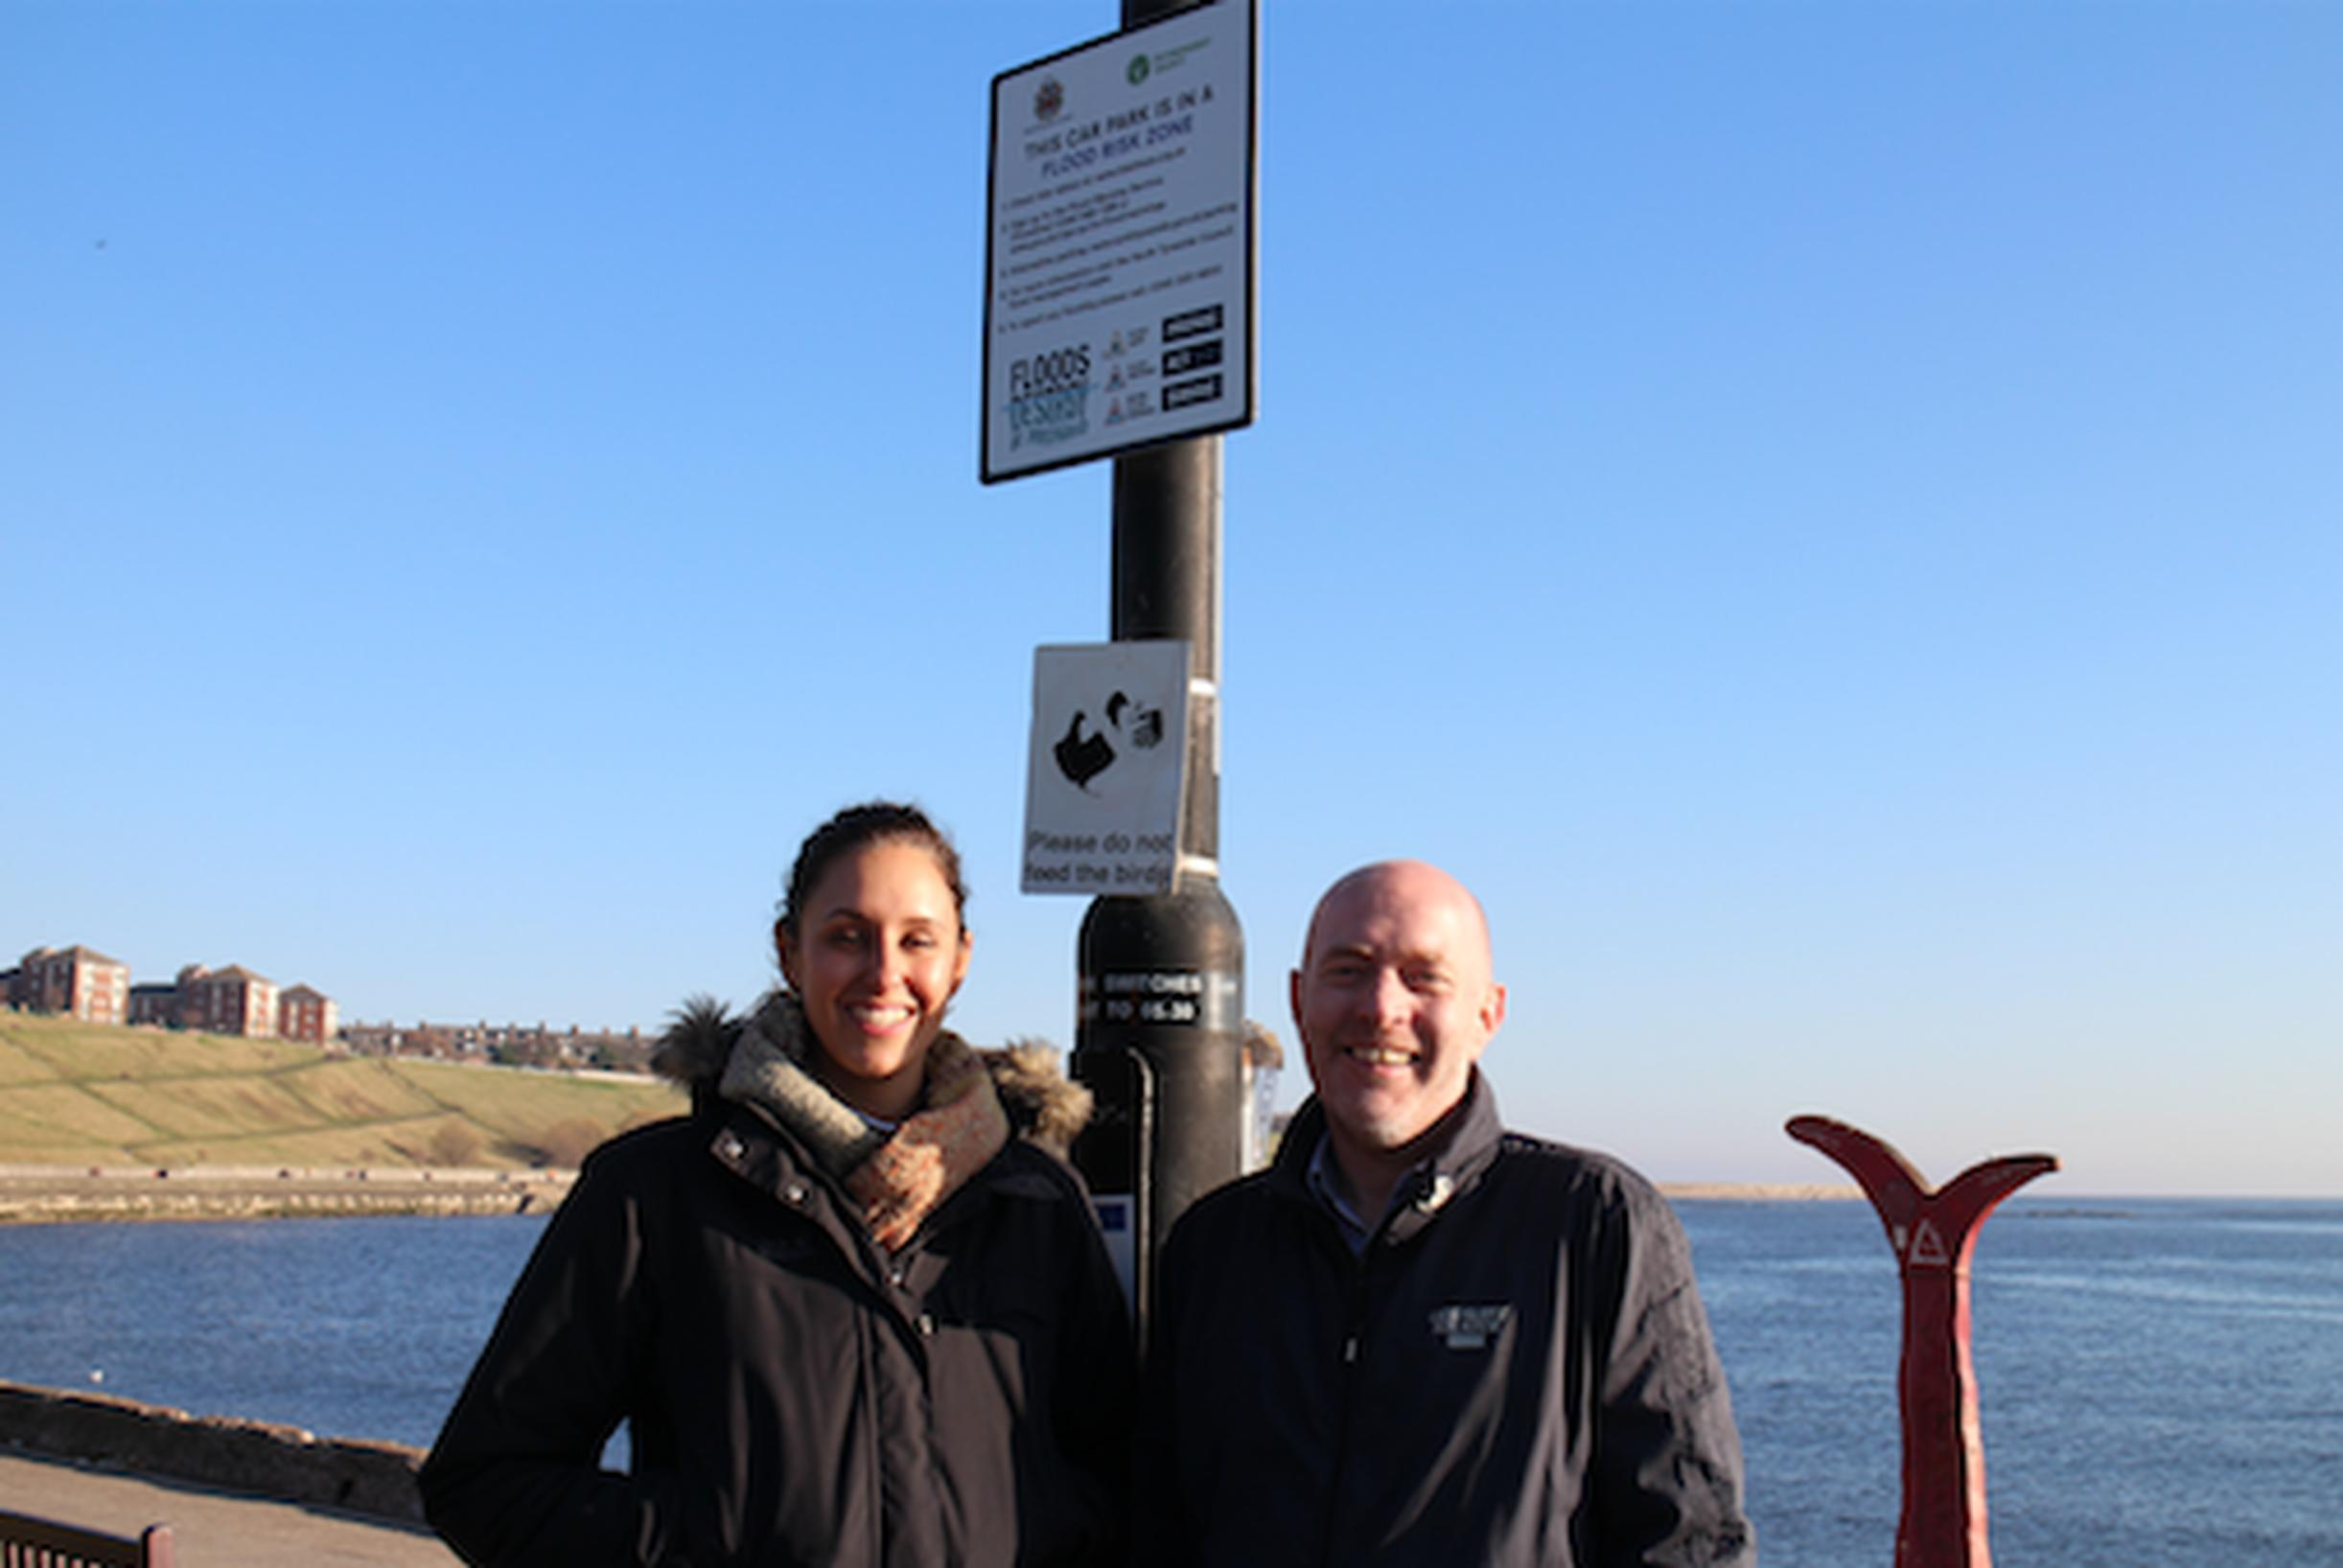 Signs help to identify flood risk car parks